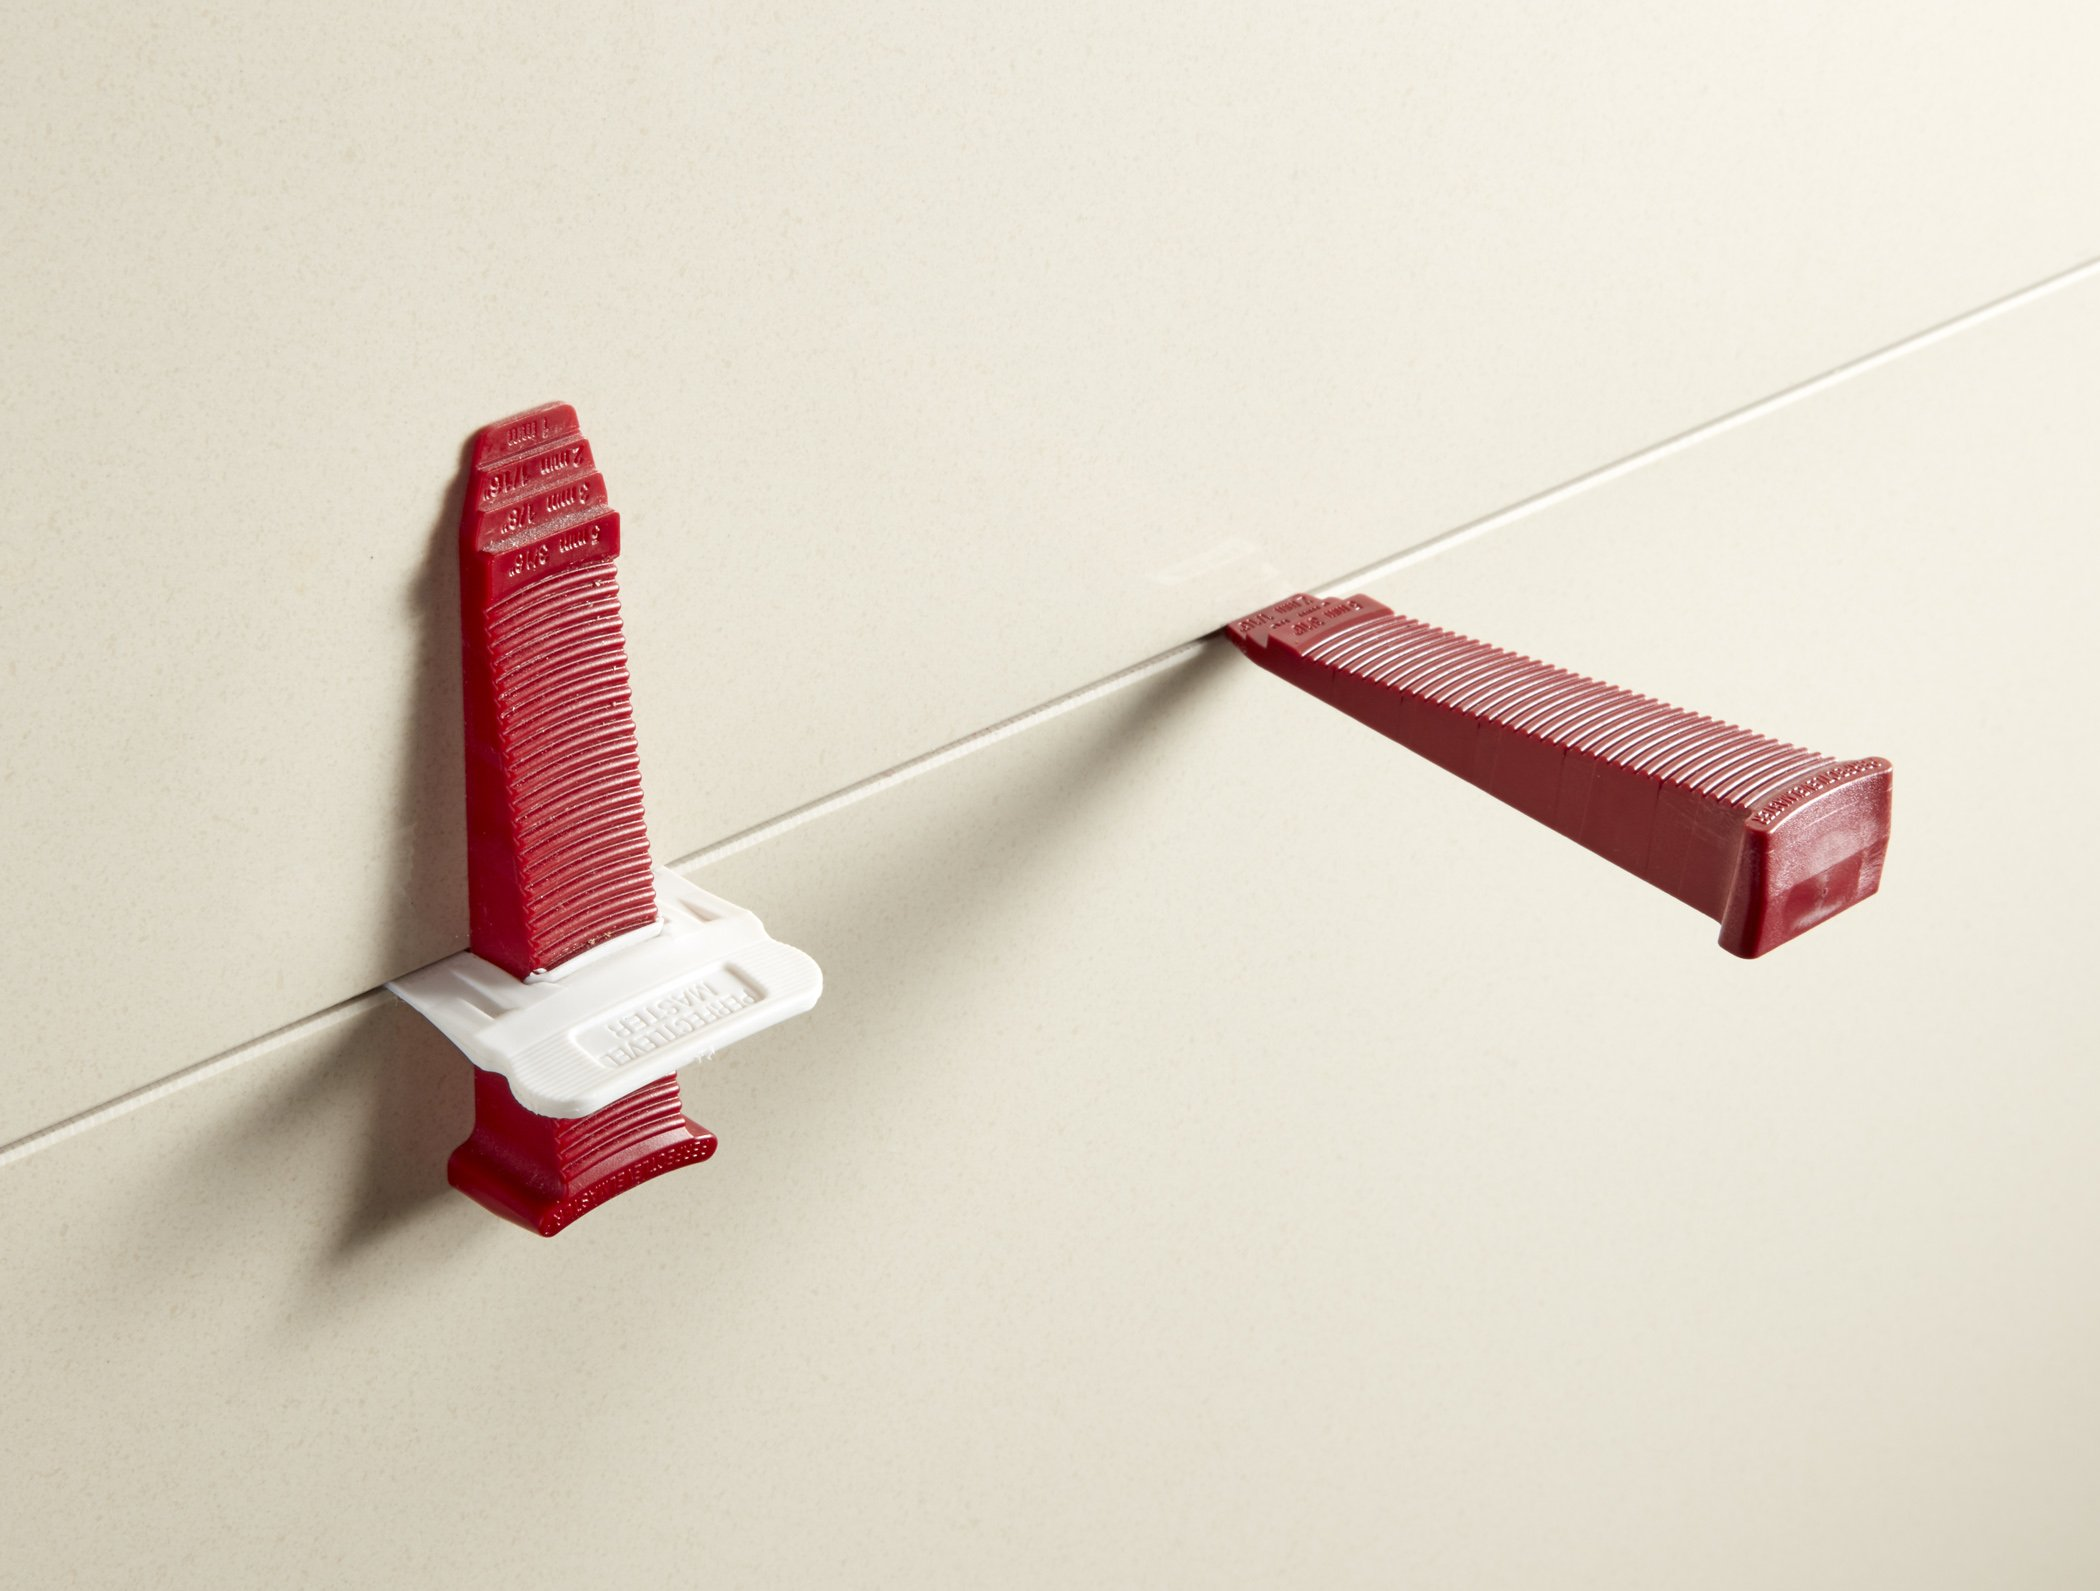 T-Lock ™ 1/16'' (2mm) 100 Clips '' PERFECT LEVEL MASTER ™ Professional '' Anti lippage '' Tile leveling system - (spacers only), Red wedges not included and sold separately! by Perfect Level Master ™ (Image #2)